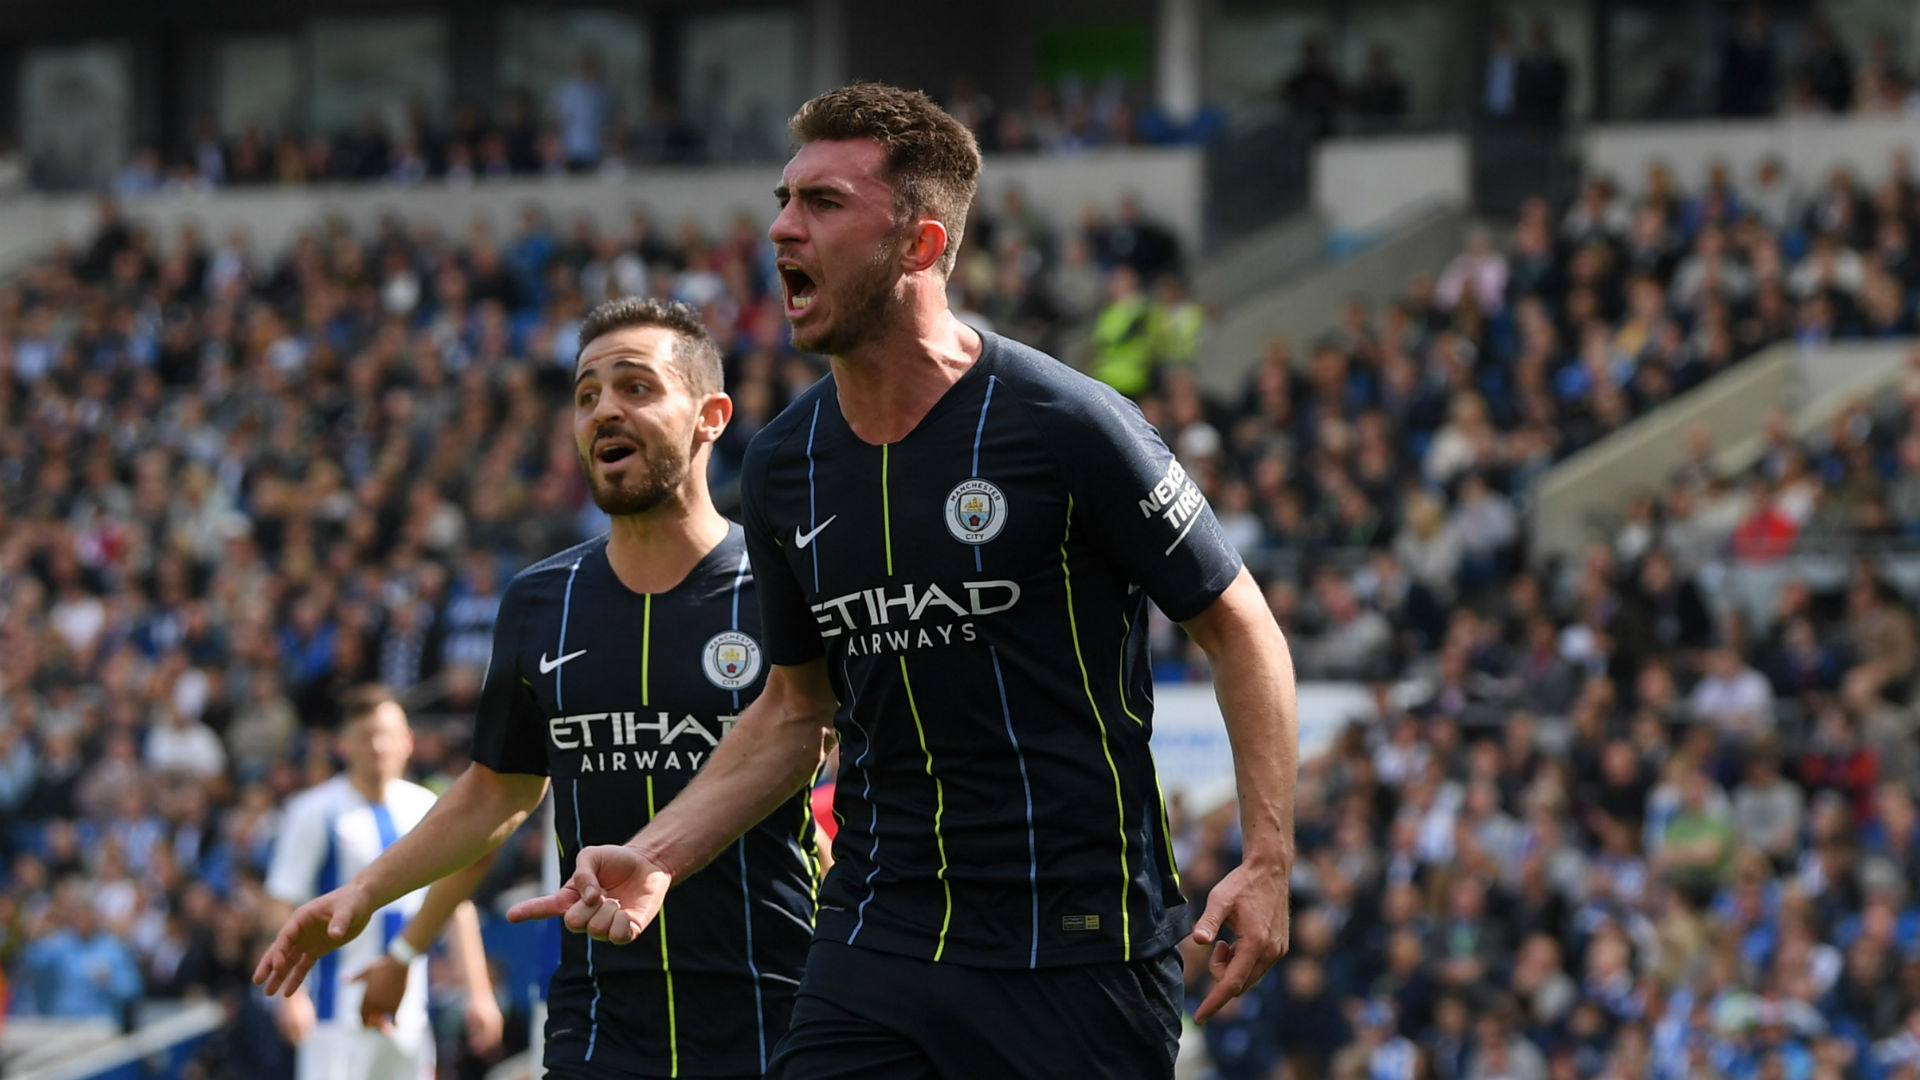 Laporte cannot solve all City's problems, says Guardiola